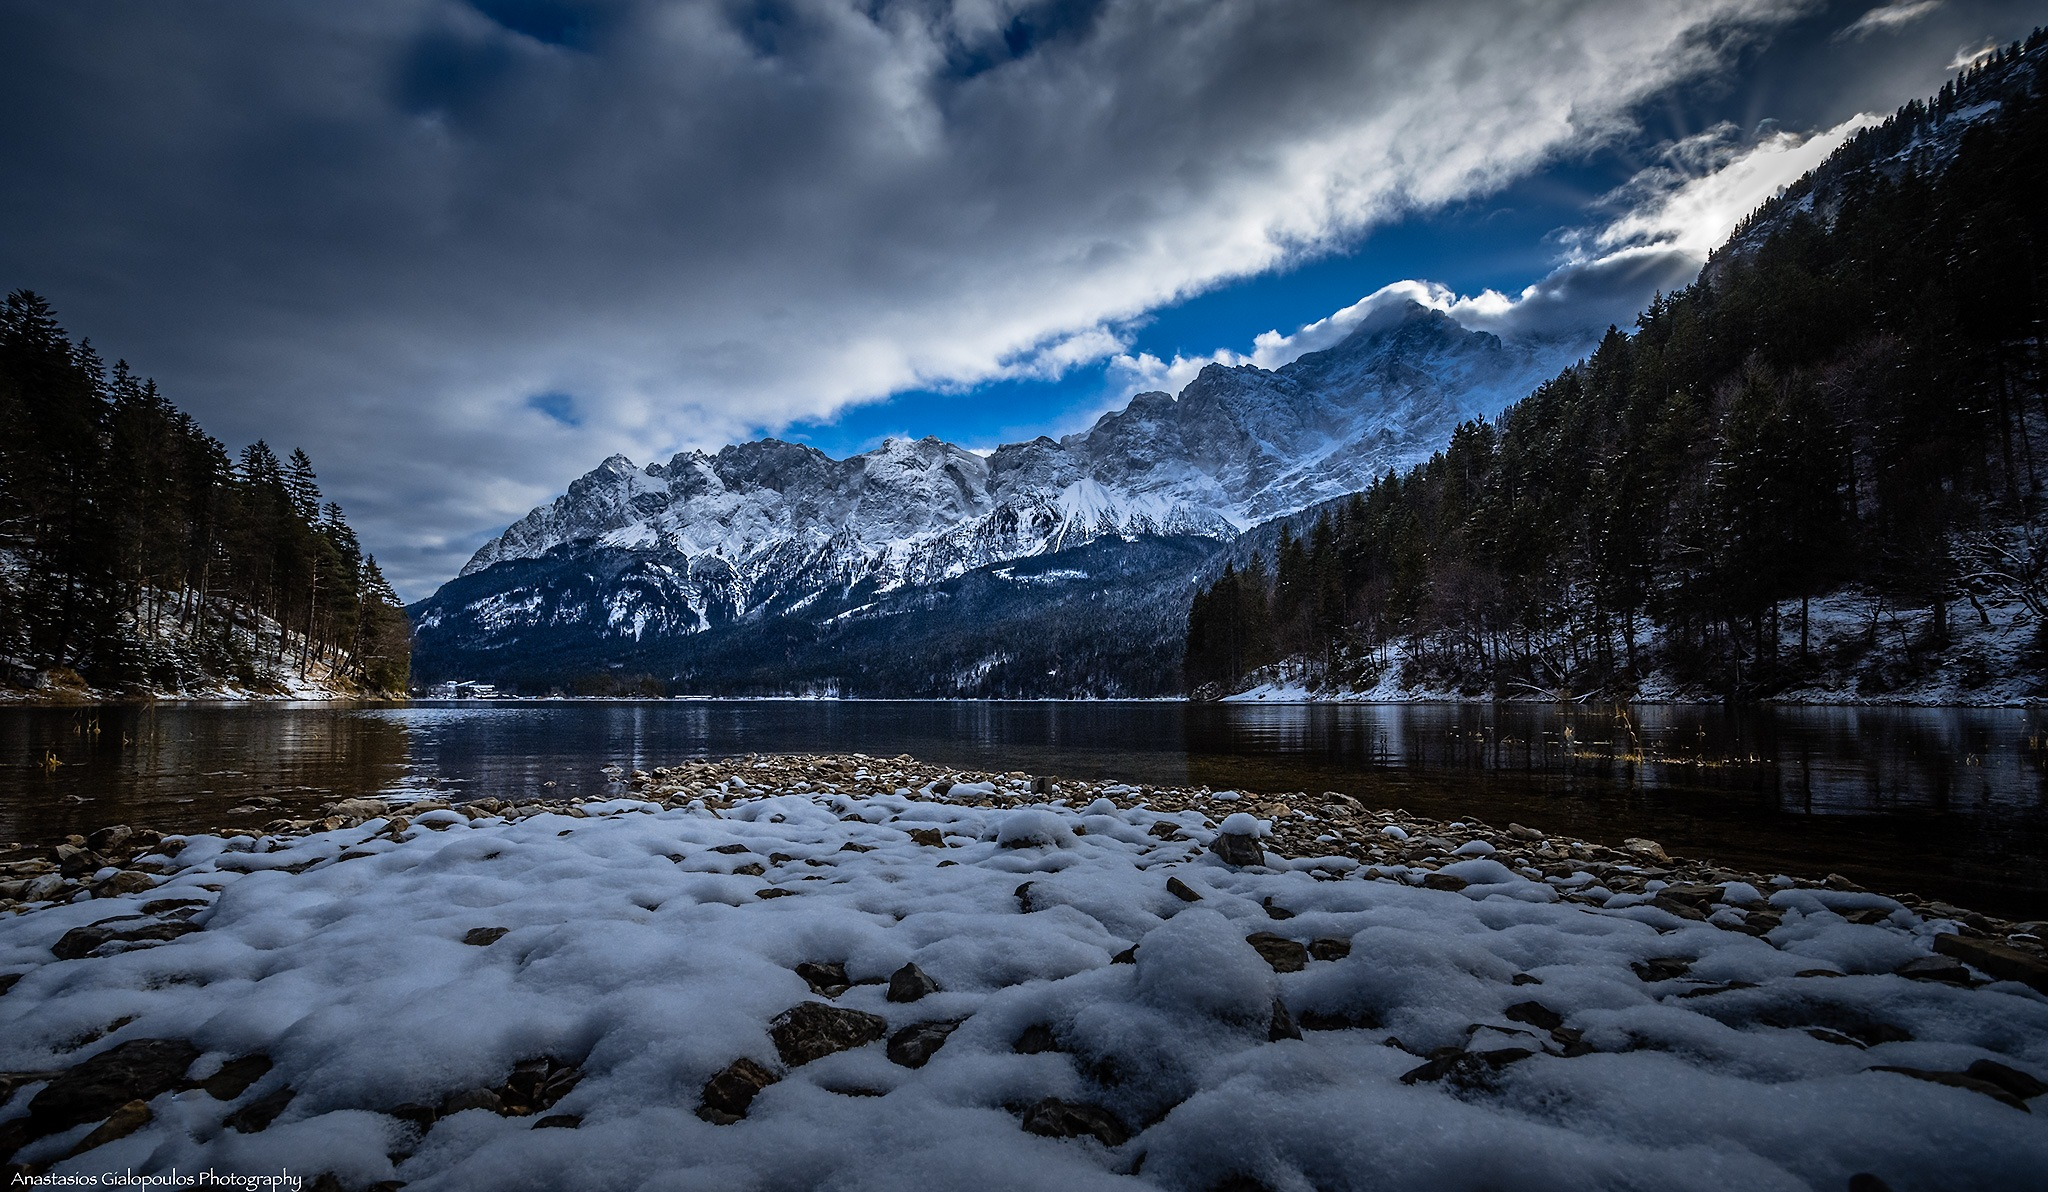 The Eibsee by Anastasios Gialopoulos